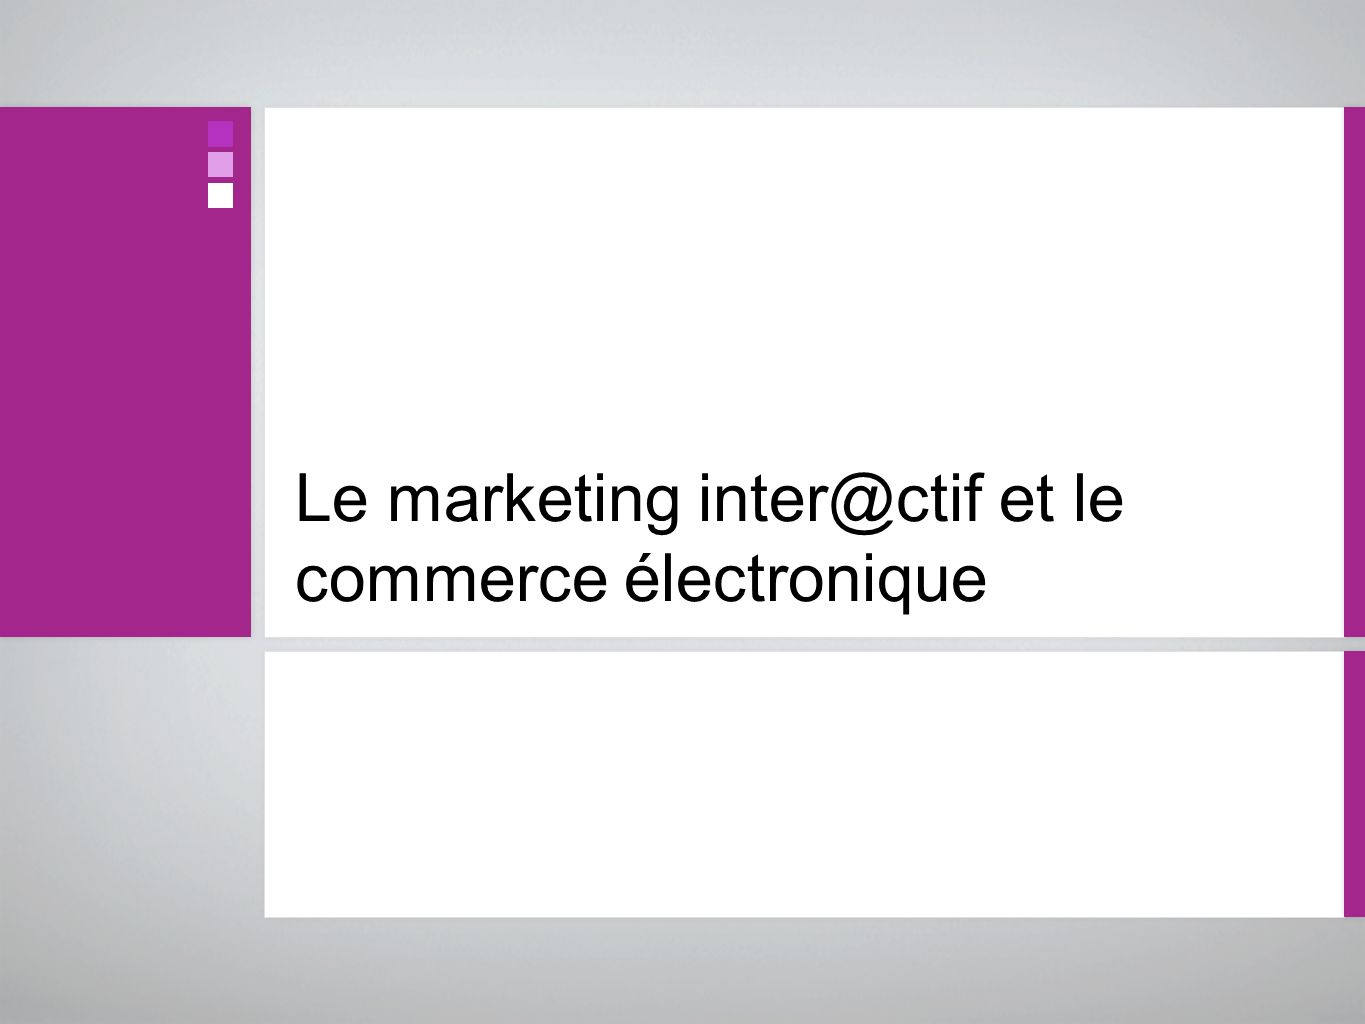 Le marketing inter@ctif et le commerce électronique